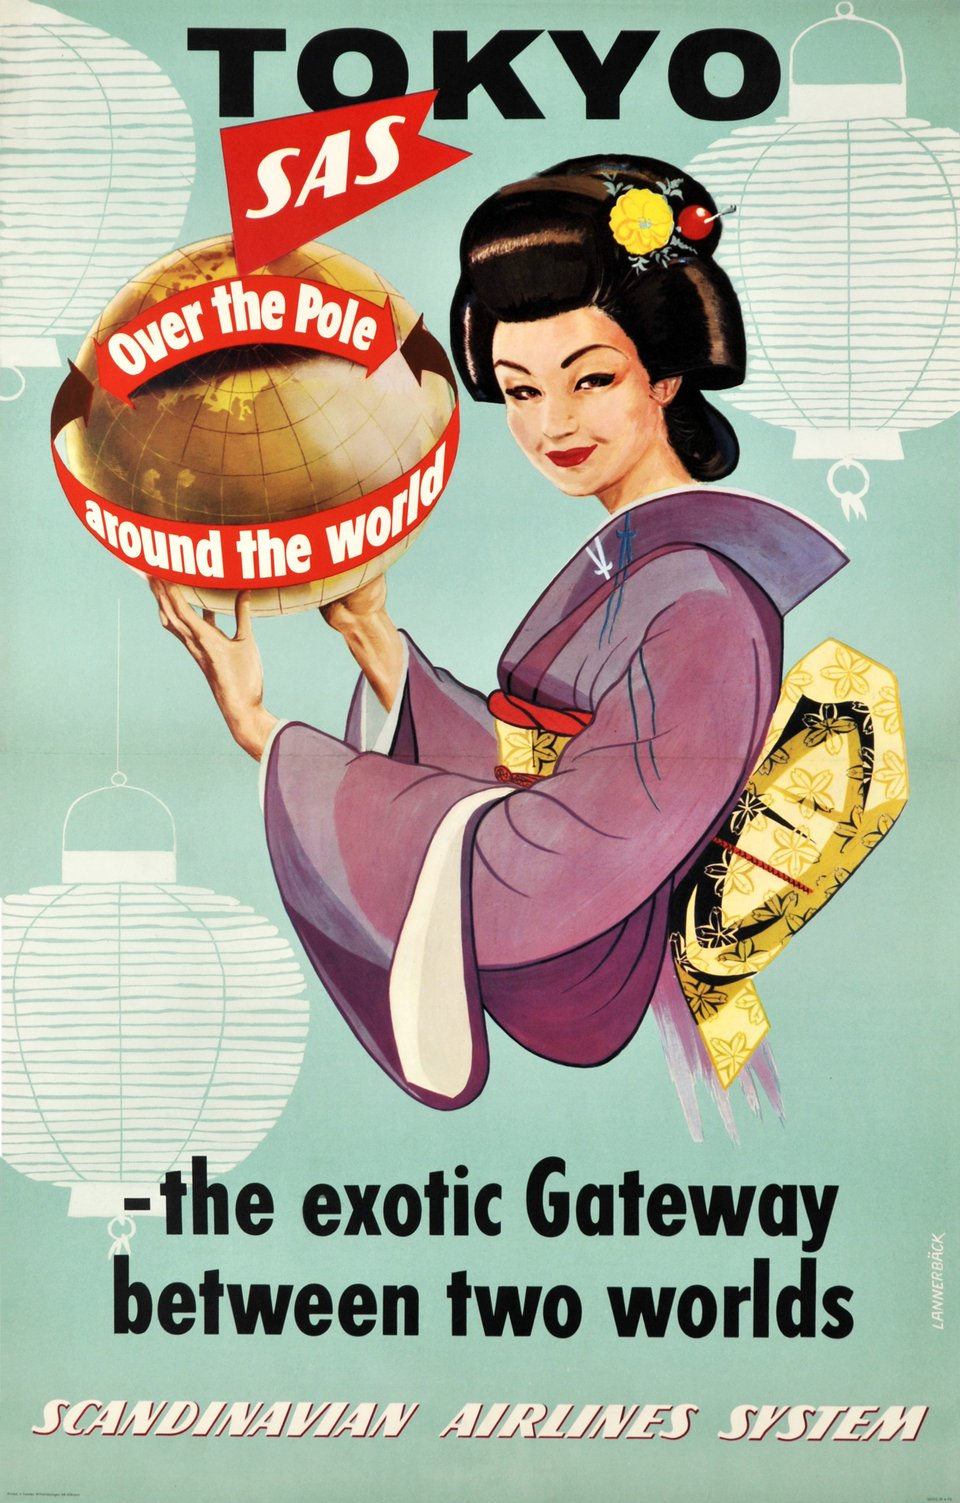 SAS - Tokyo SAS over the Pole, around the world, the exotic Gateway between two worlds – Vintage poster – LANNEBACK – 1954